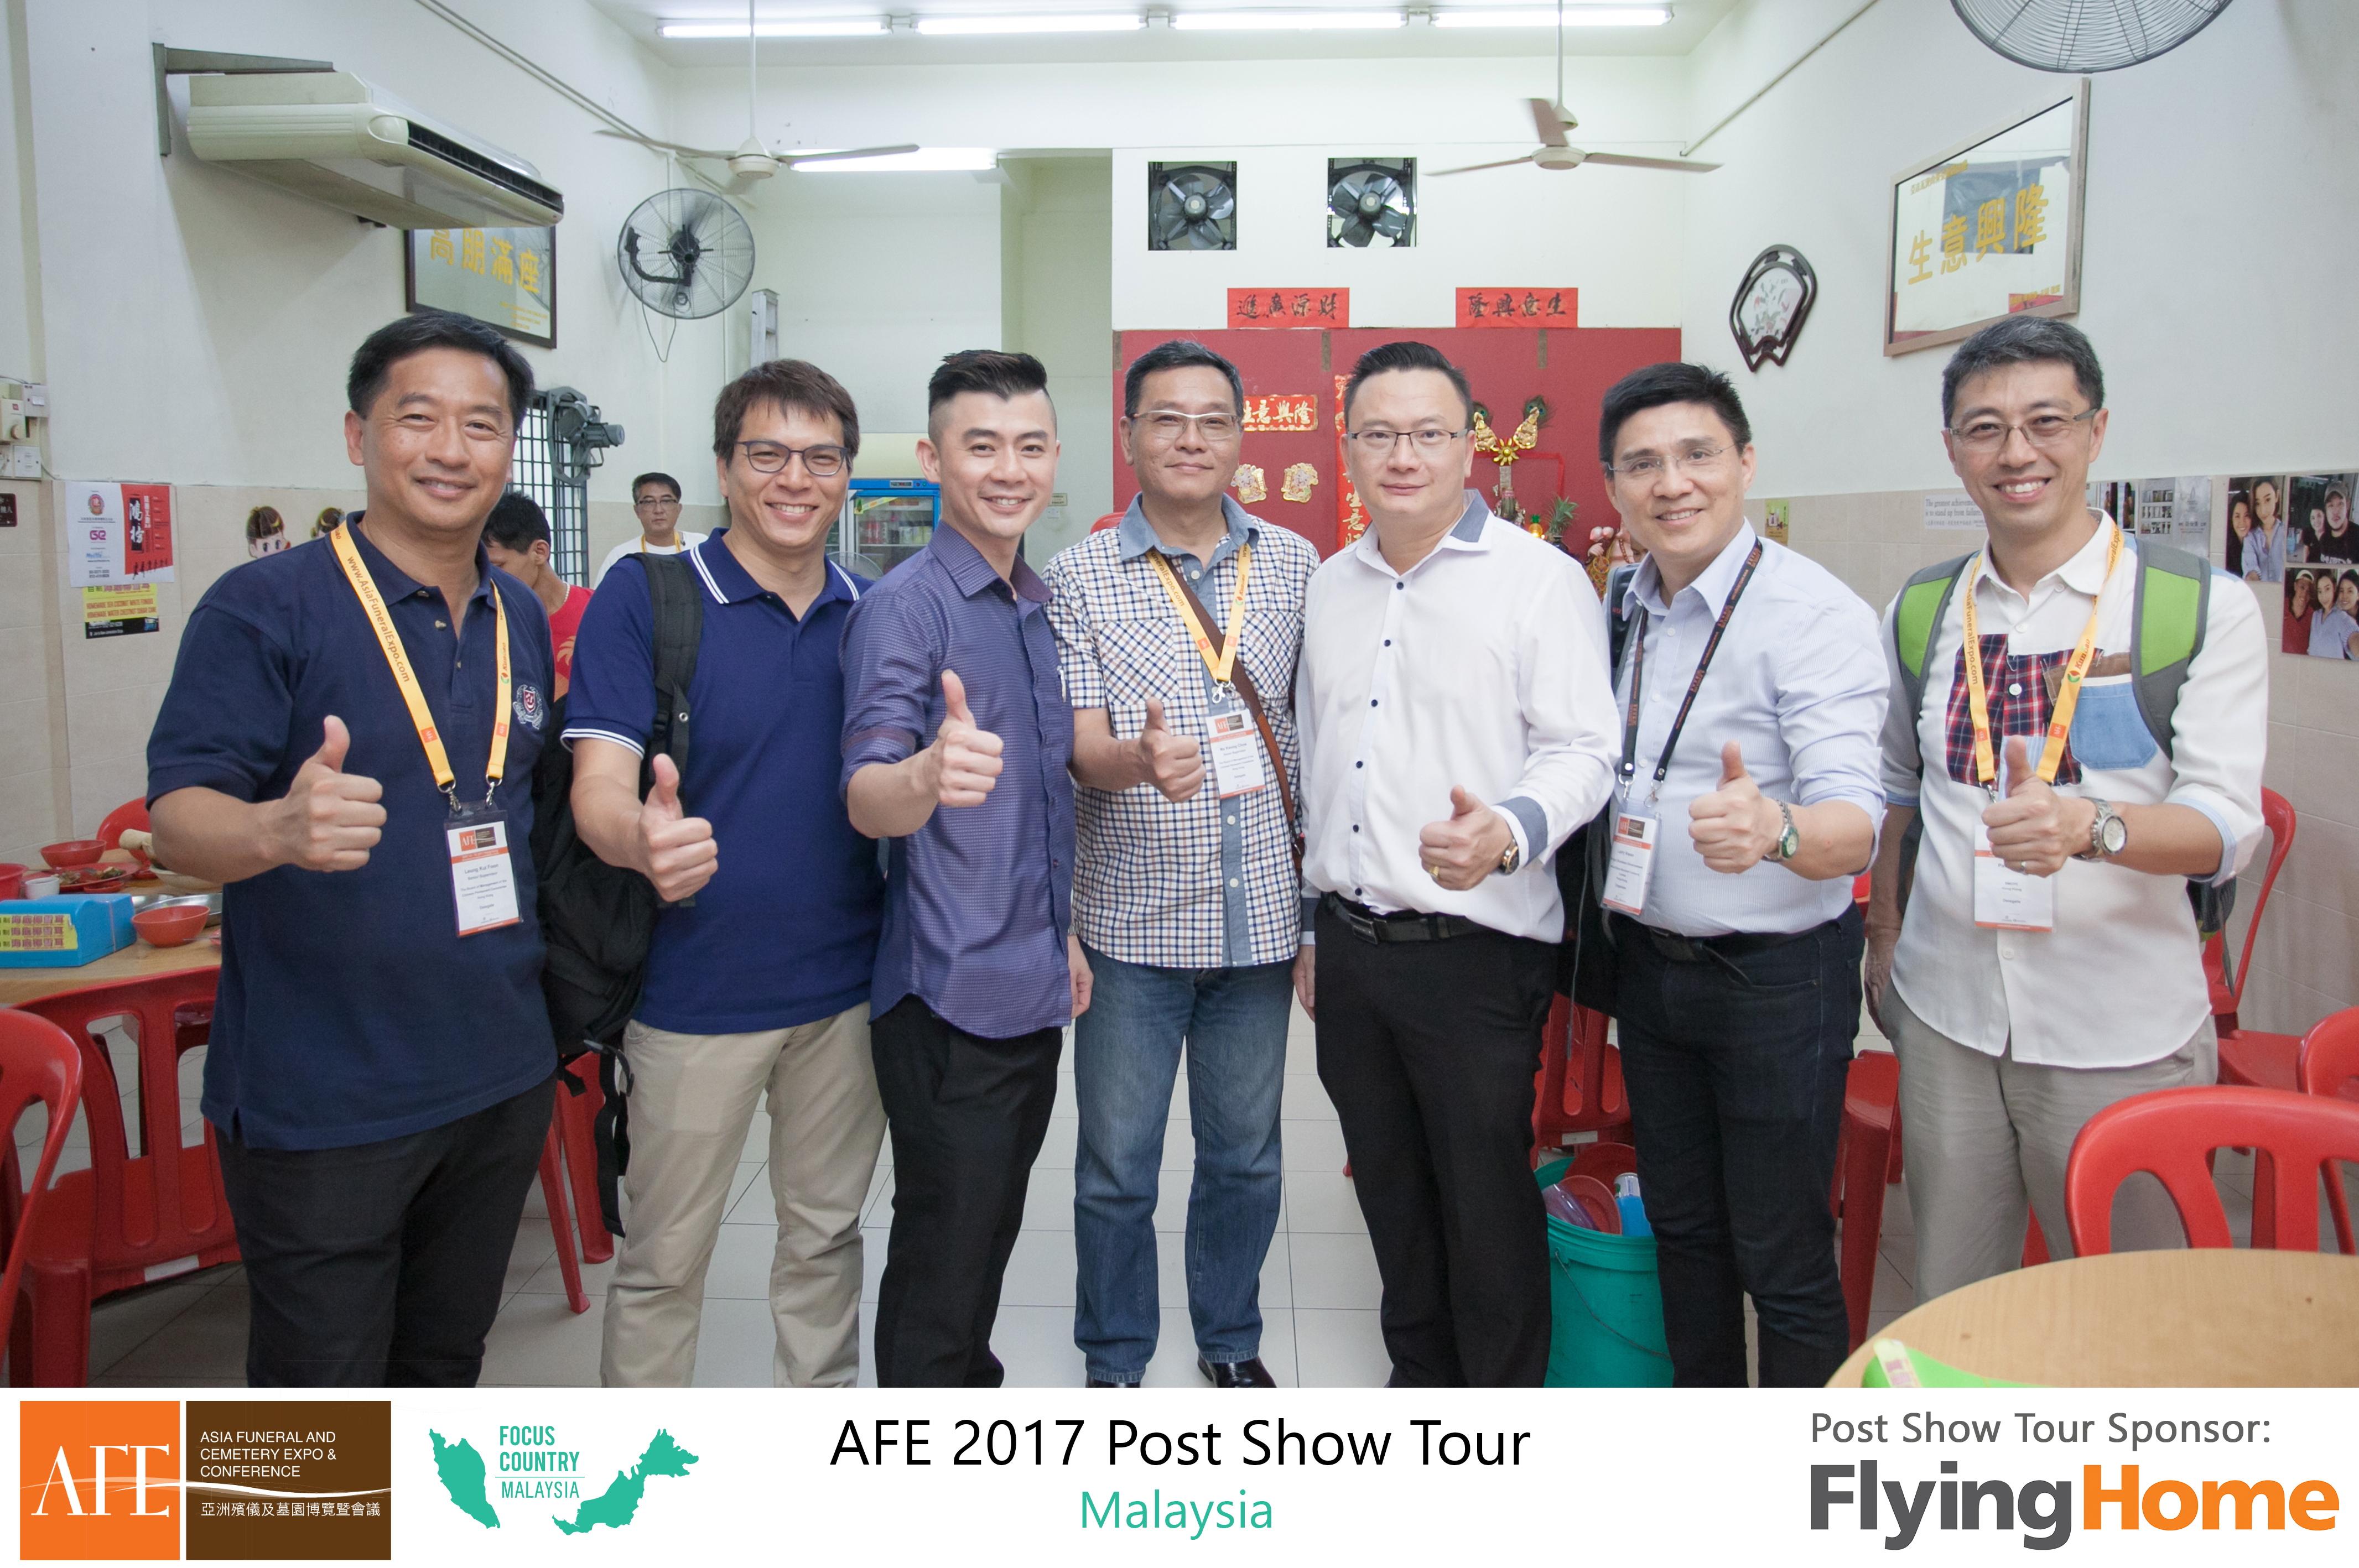 AFE Post Show Tour 2017 Day 4 - 30